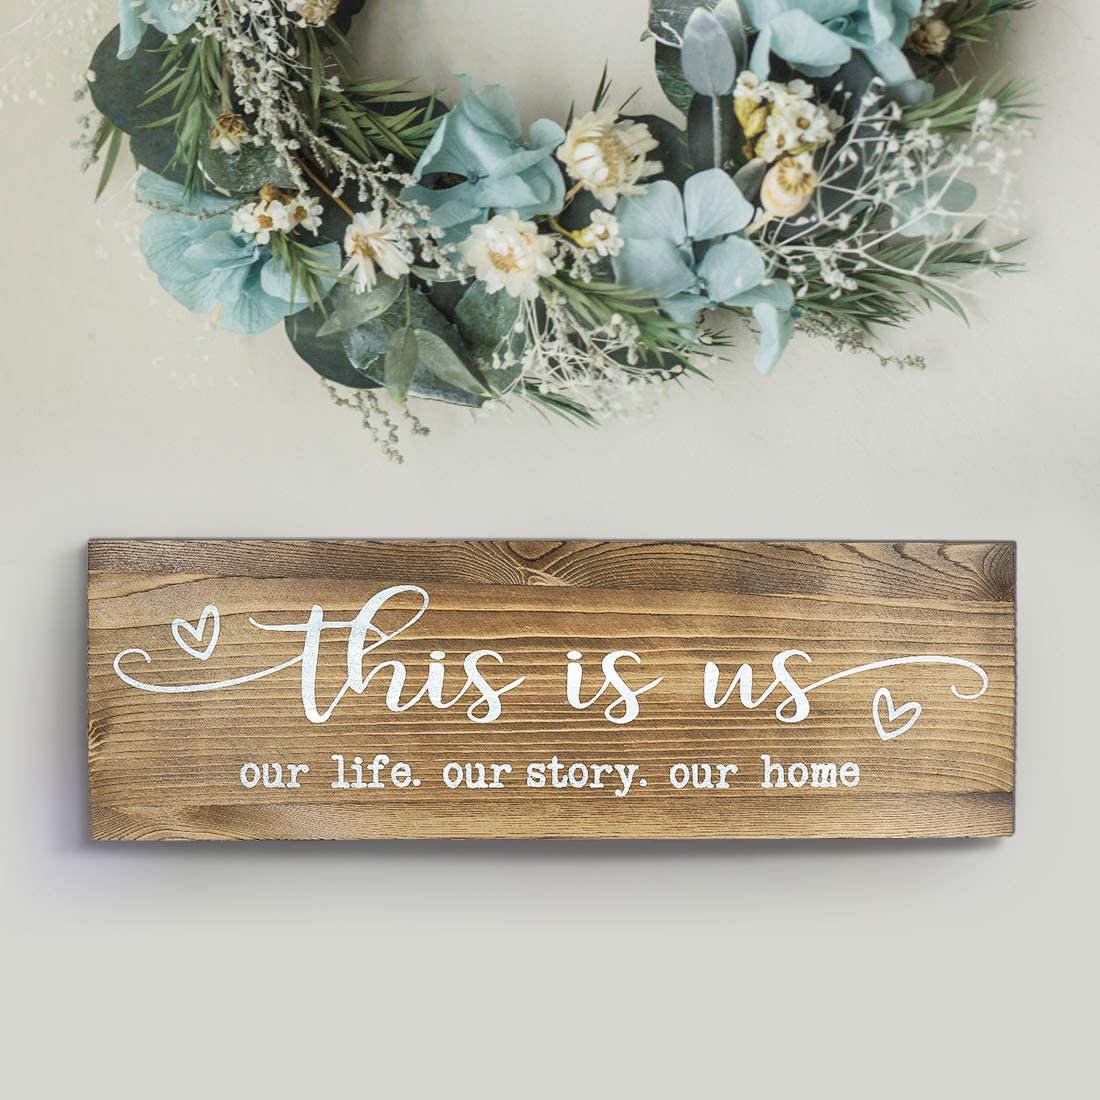 CHICVITA Rustic Wall Mounted Wood Sign, This is Us Painted Farmhouse Wall Decoration for Living Room Bedroom Entryway Kitchen, 16.5